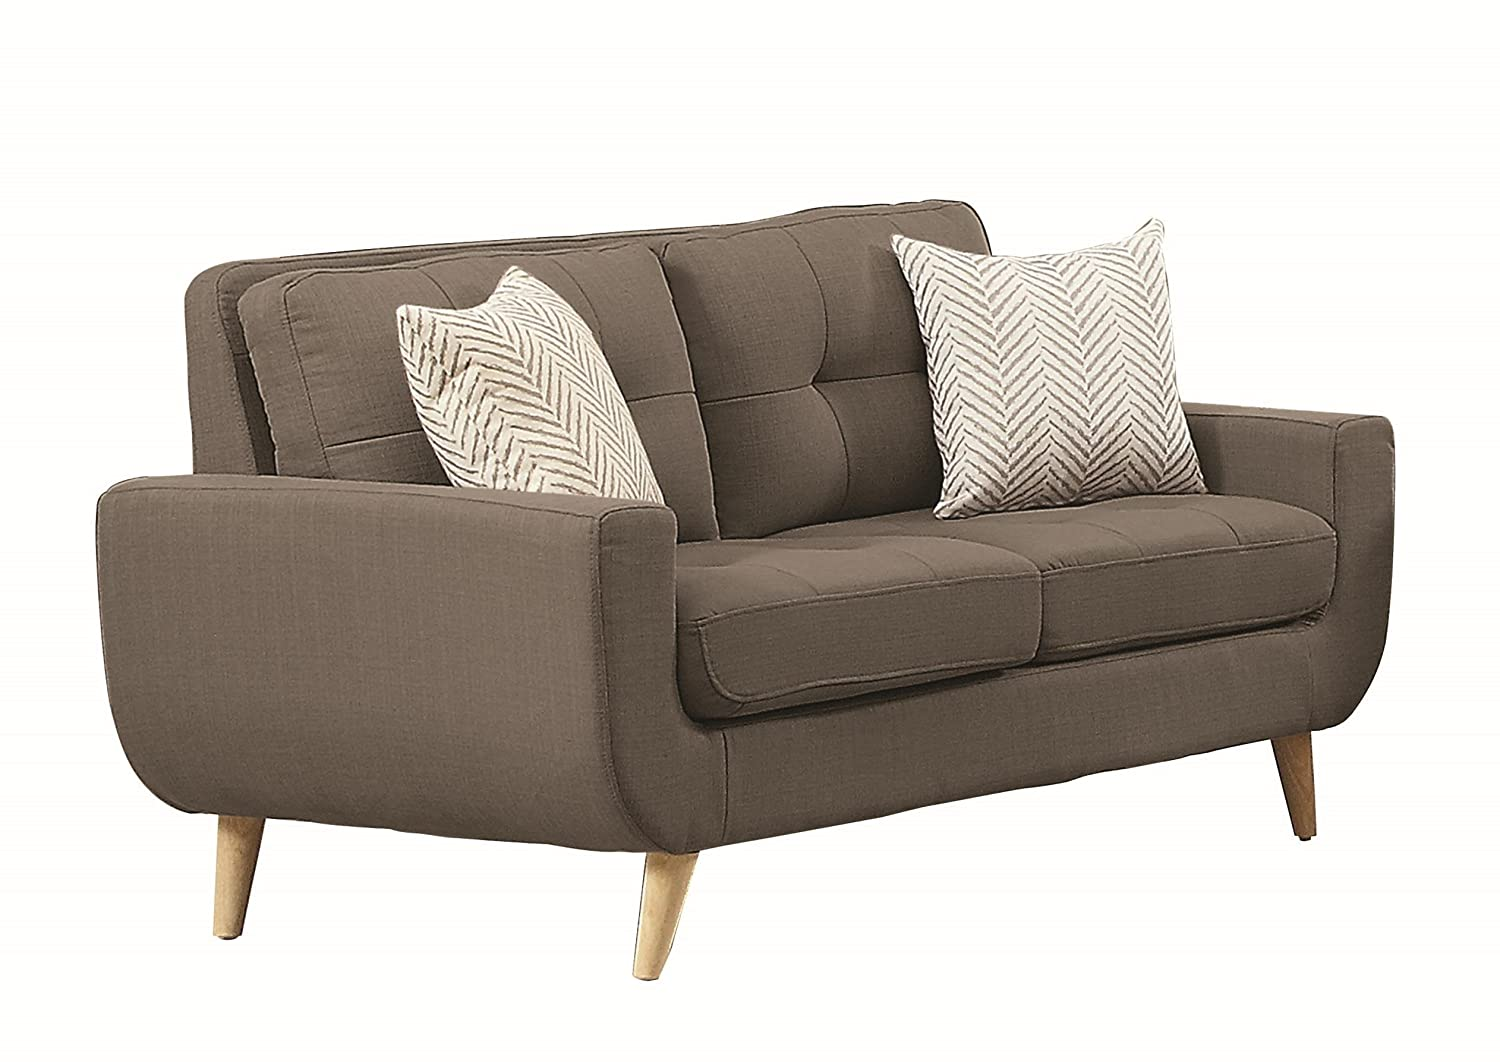 Homelegance Deryn Mid-Century Modern Loveseat with Tufted Back and Two Herringbone Throw Pillows - Grey